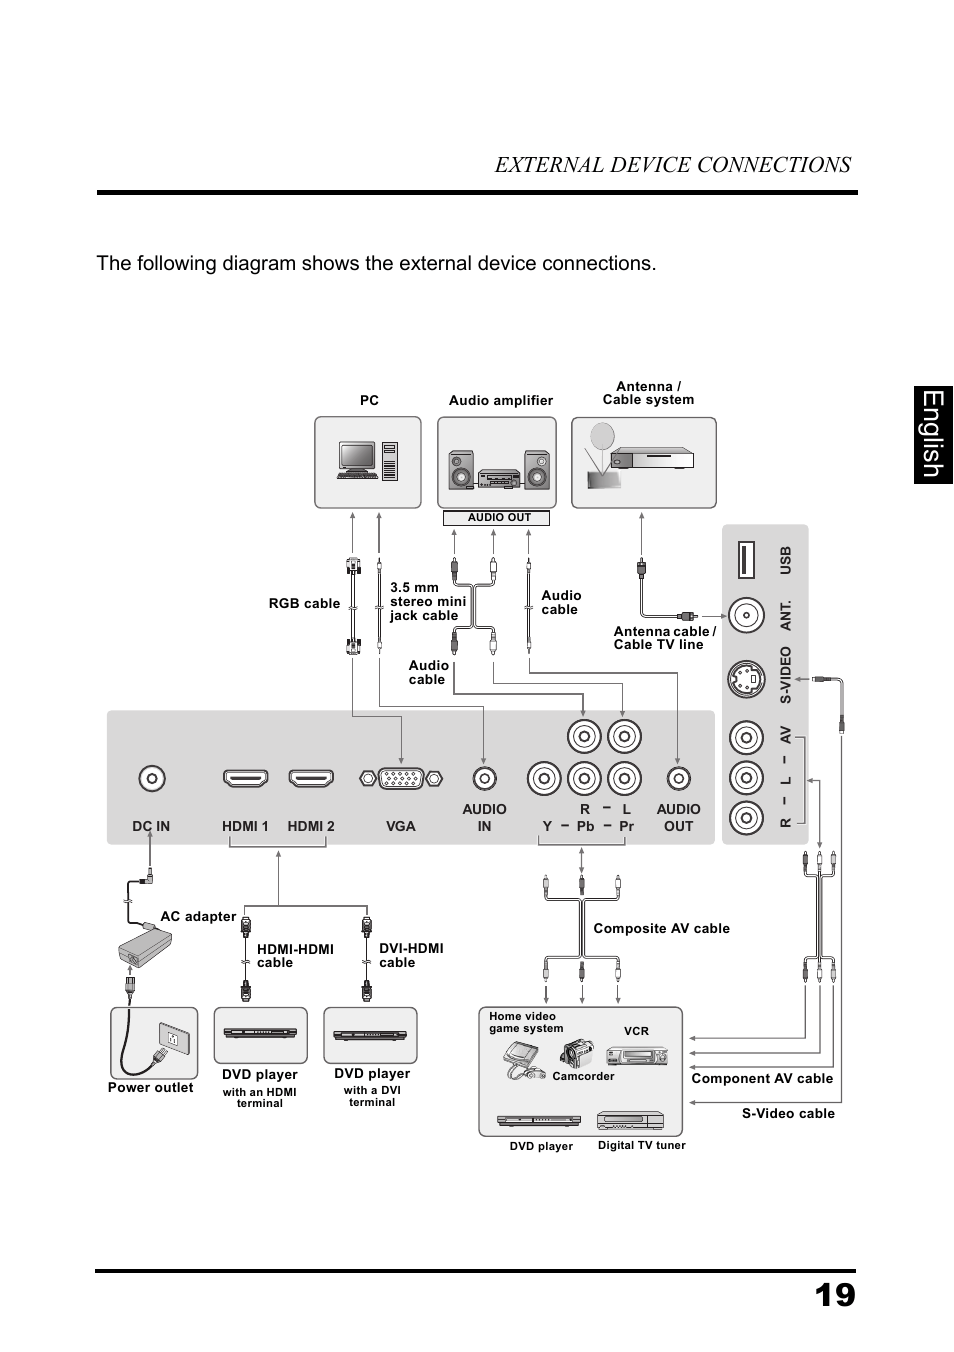 medium resolution of english external device connections westinghouse ld 3260 user manual page 24 66